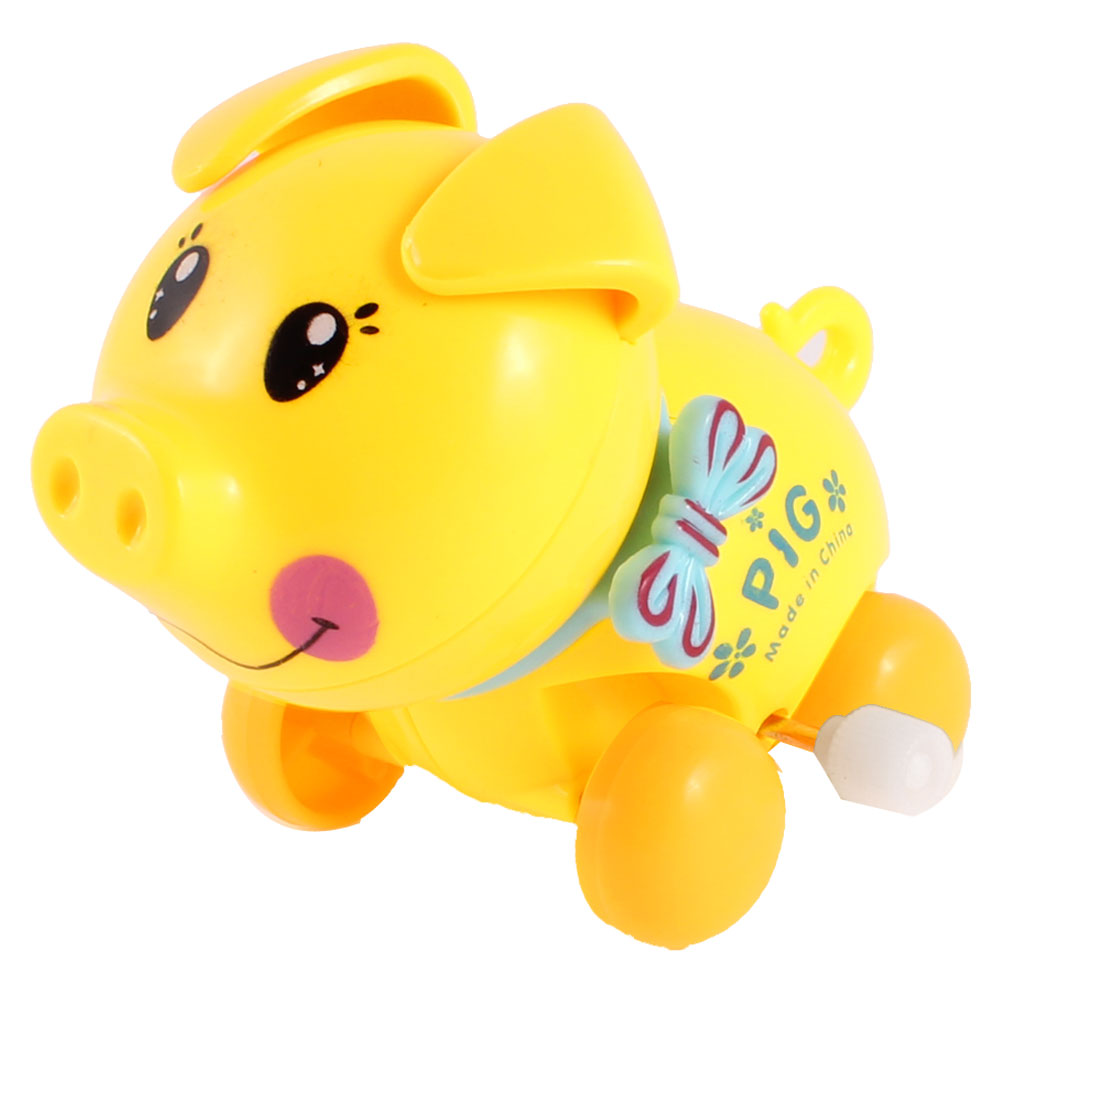 Child Yellow Baby Blue Plastic Headshake Pig Wind Up Design Clockwork Toy